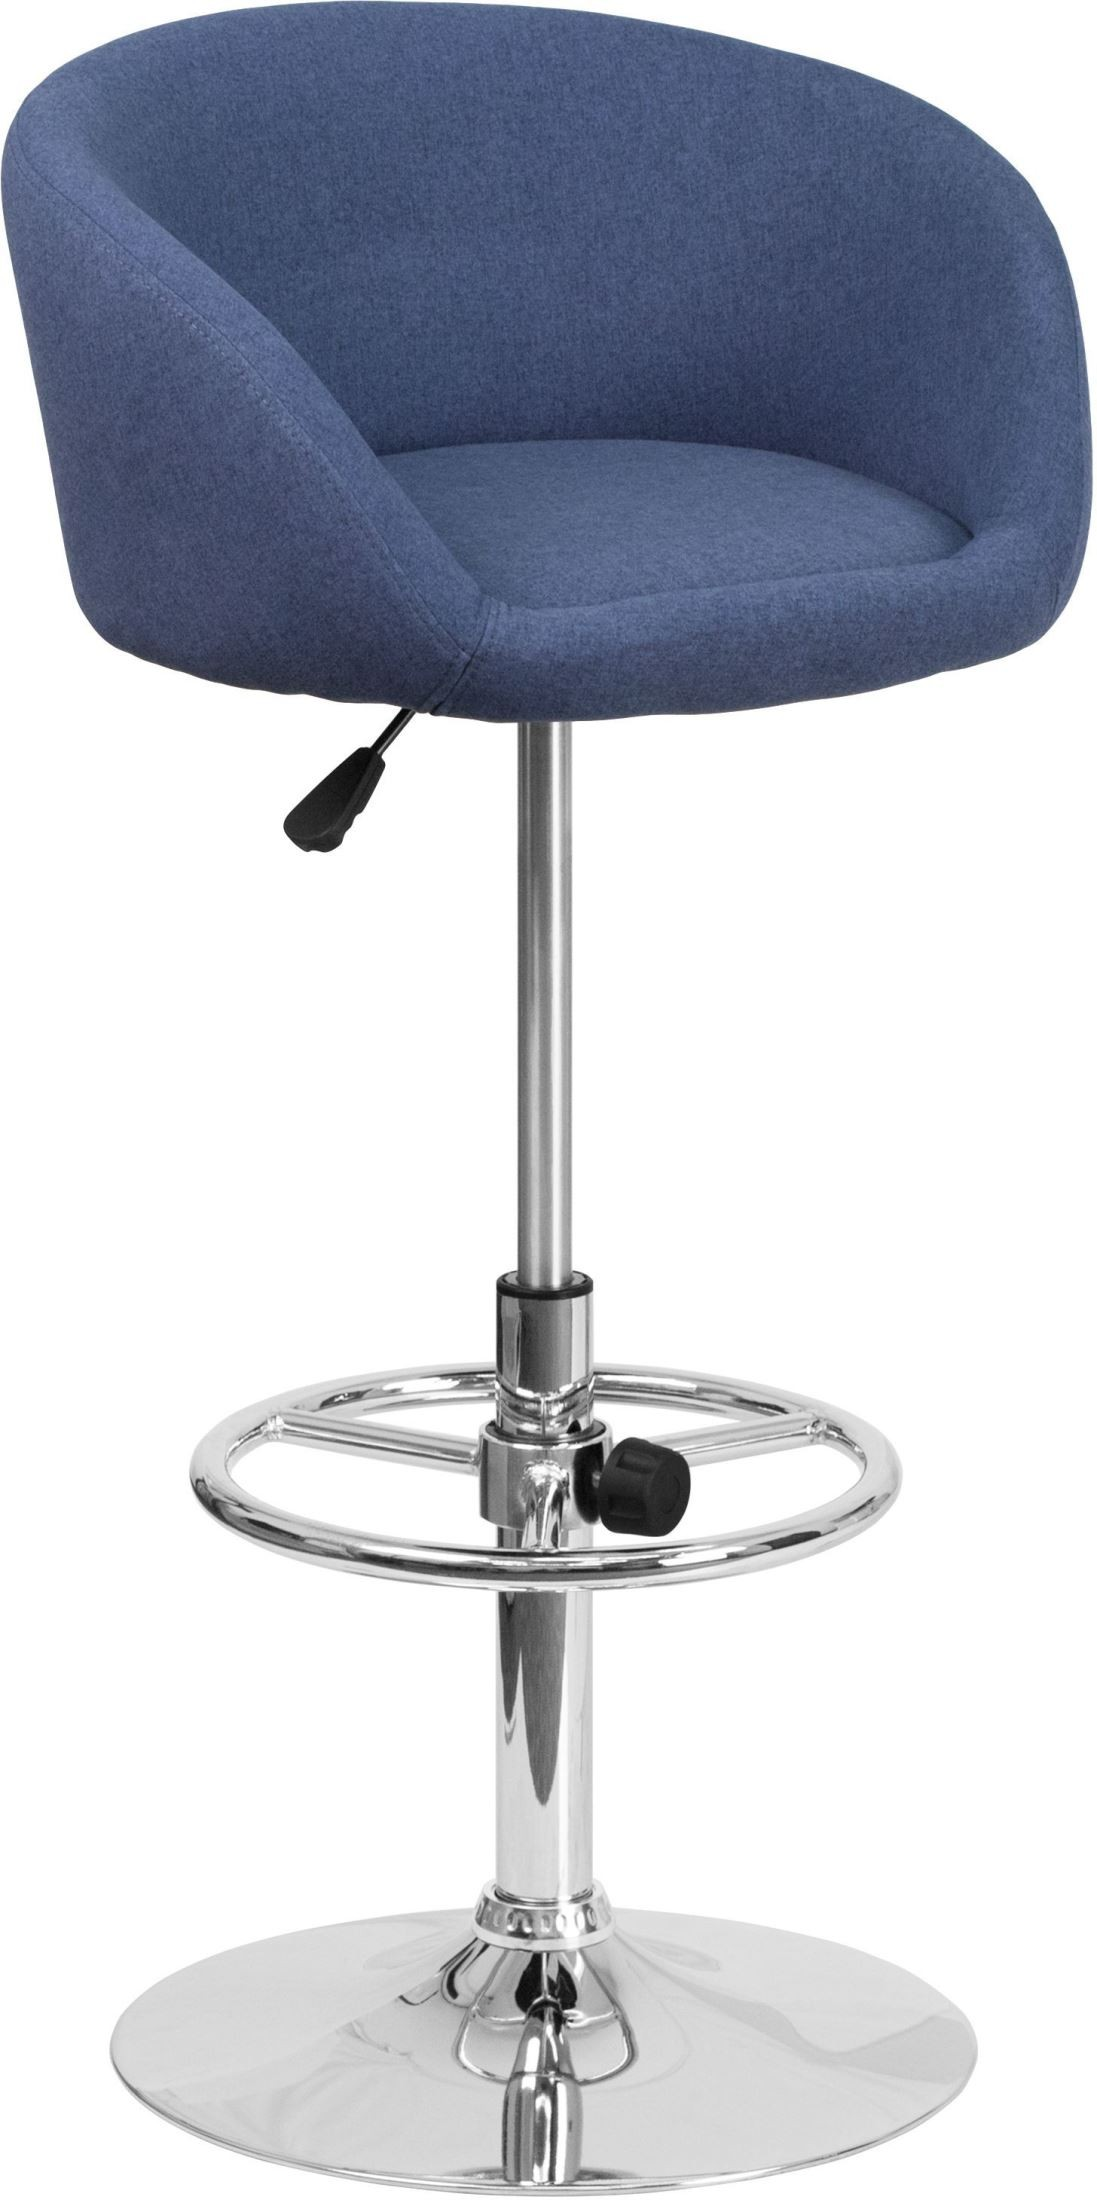 Contemporary Blue Fabric Adjustable Height Bar Stool Min  : ch tc3 1066l blfab gg from colemanfurniture.com size 1097 x 2200 jpeg 227kB